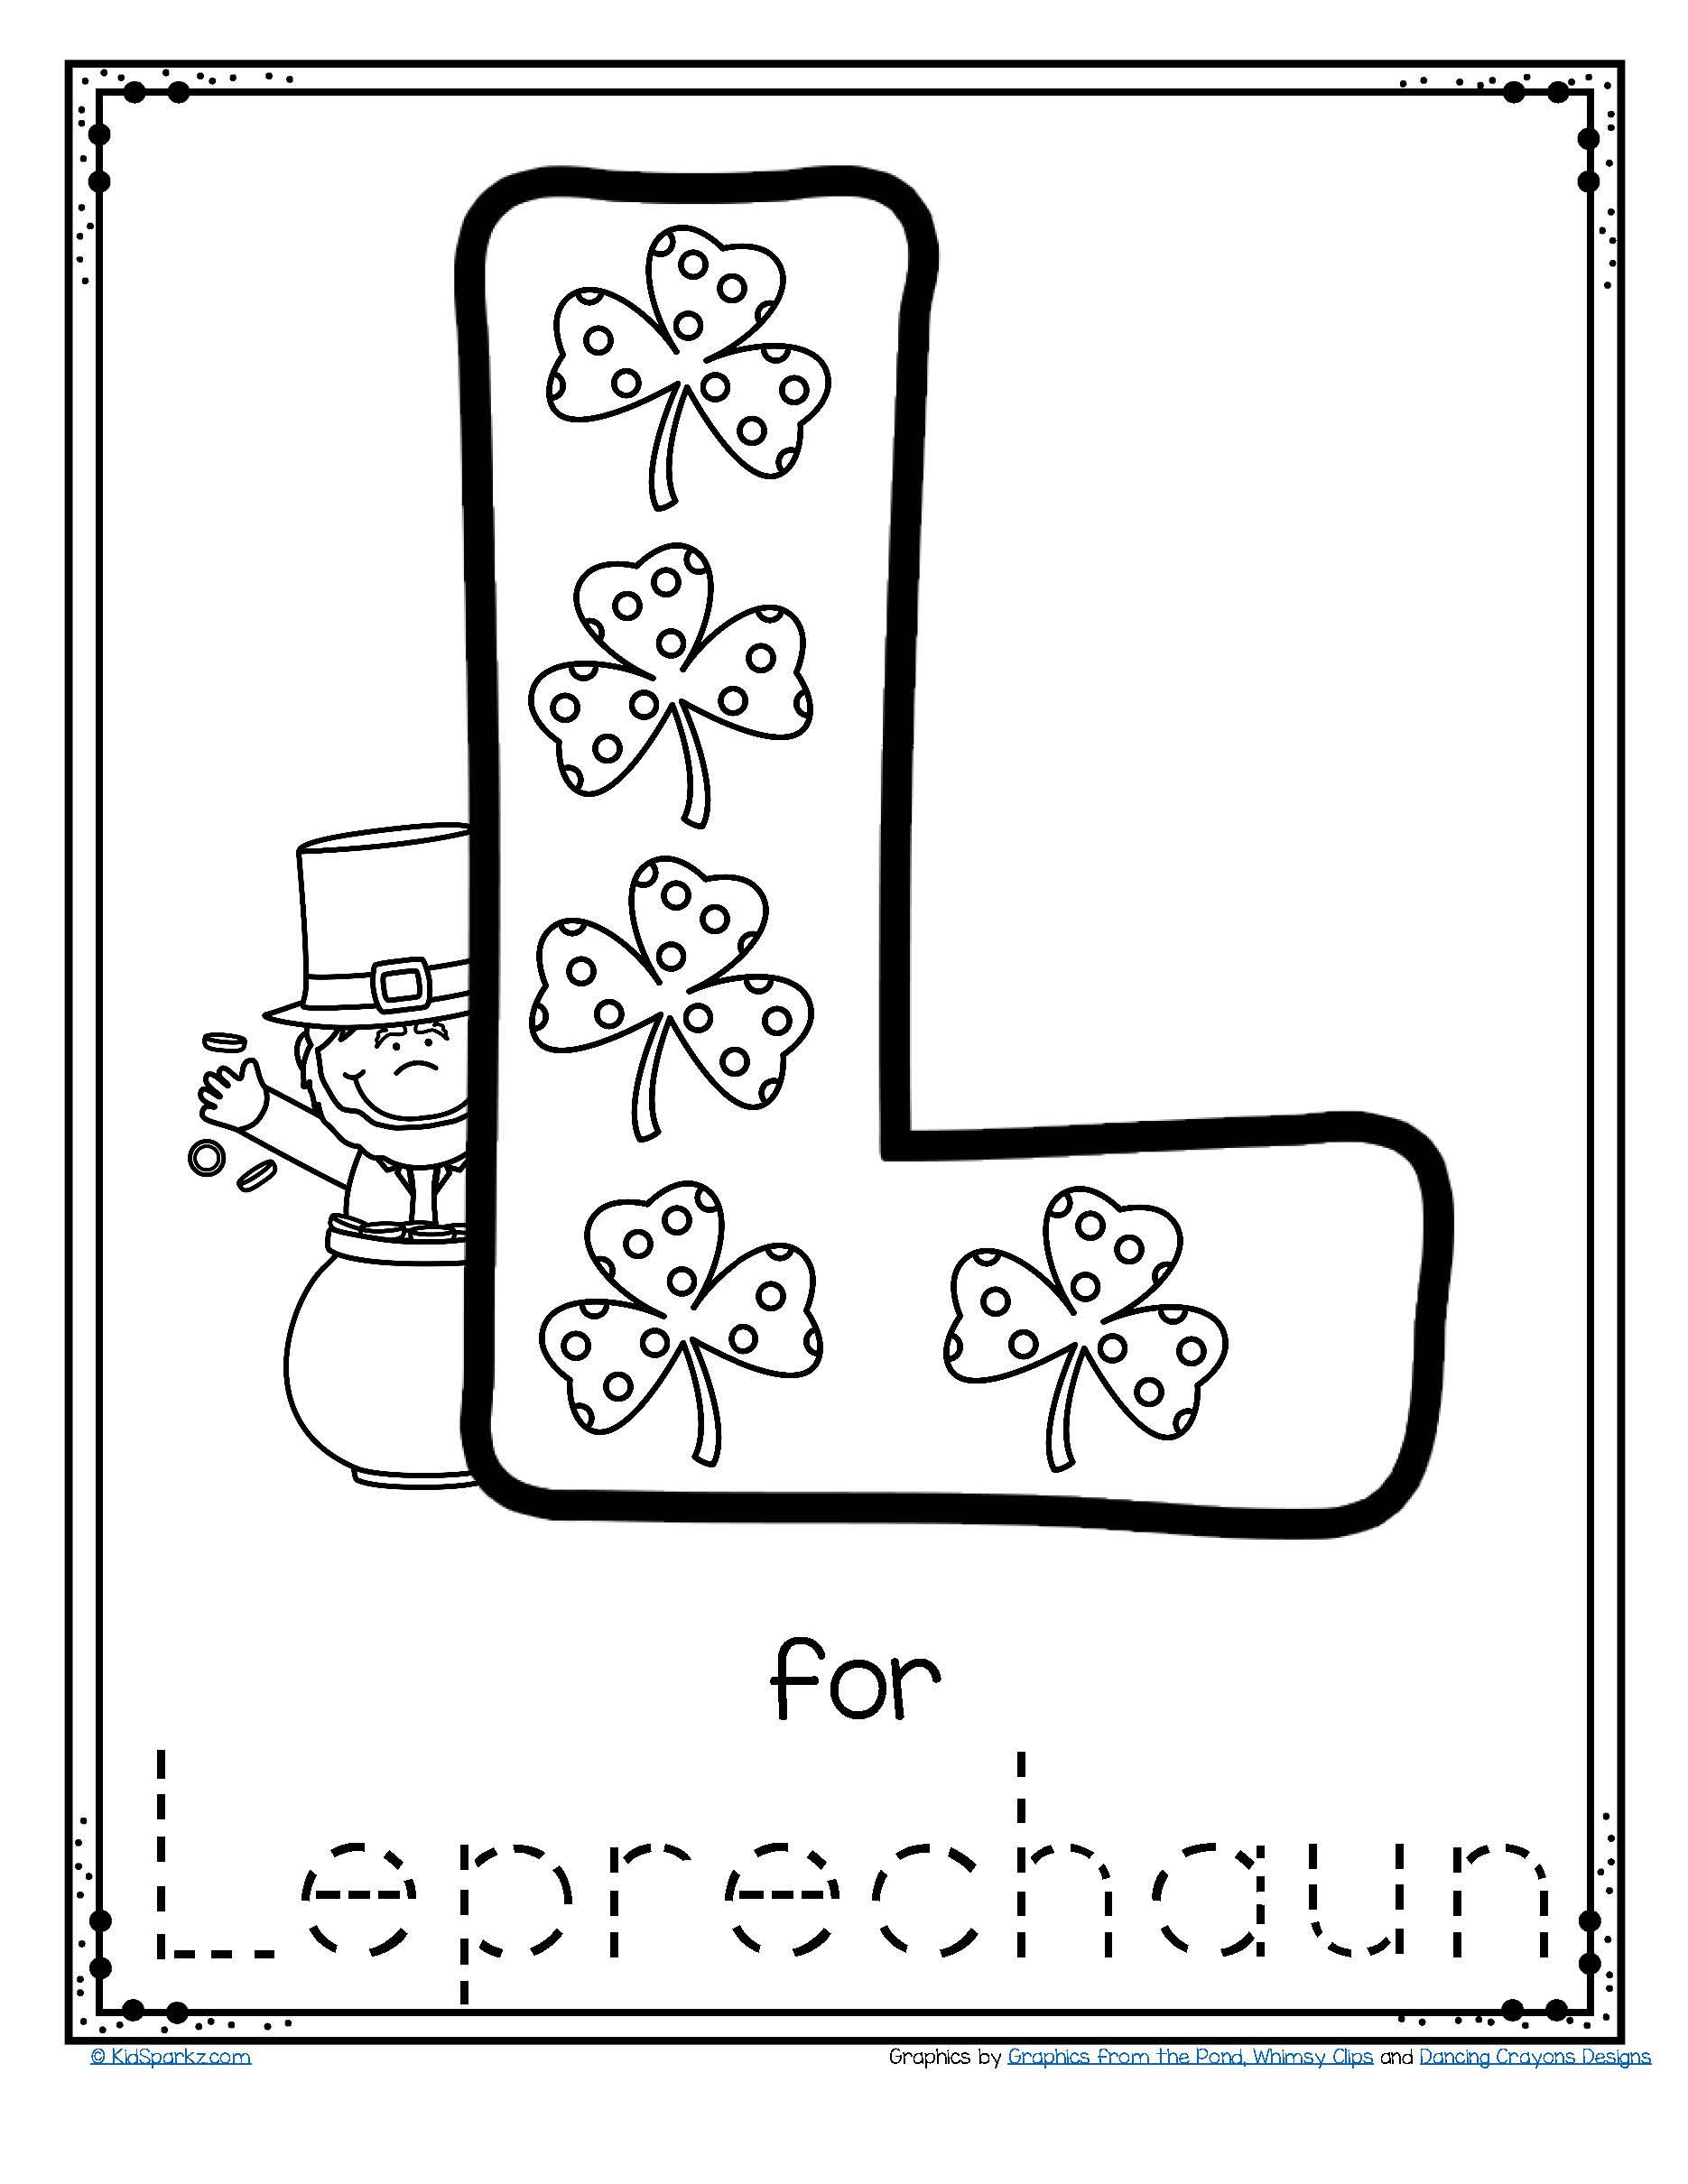 FREE L for leprechaun alphabet trace and color printable to download ...